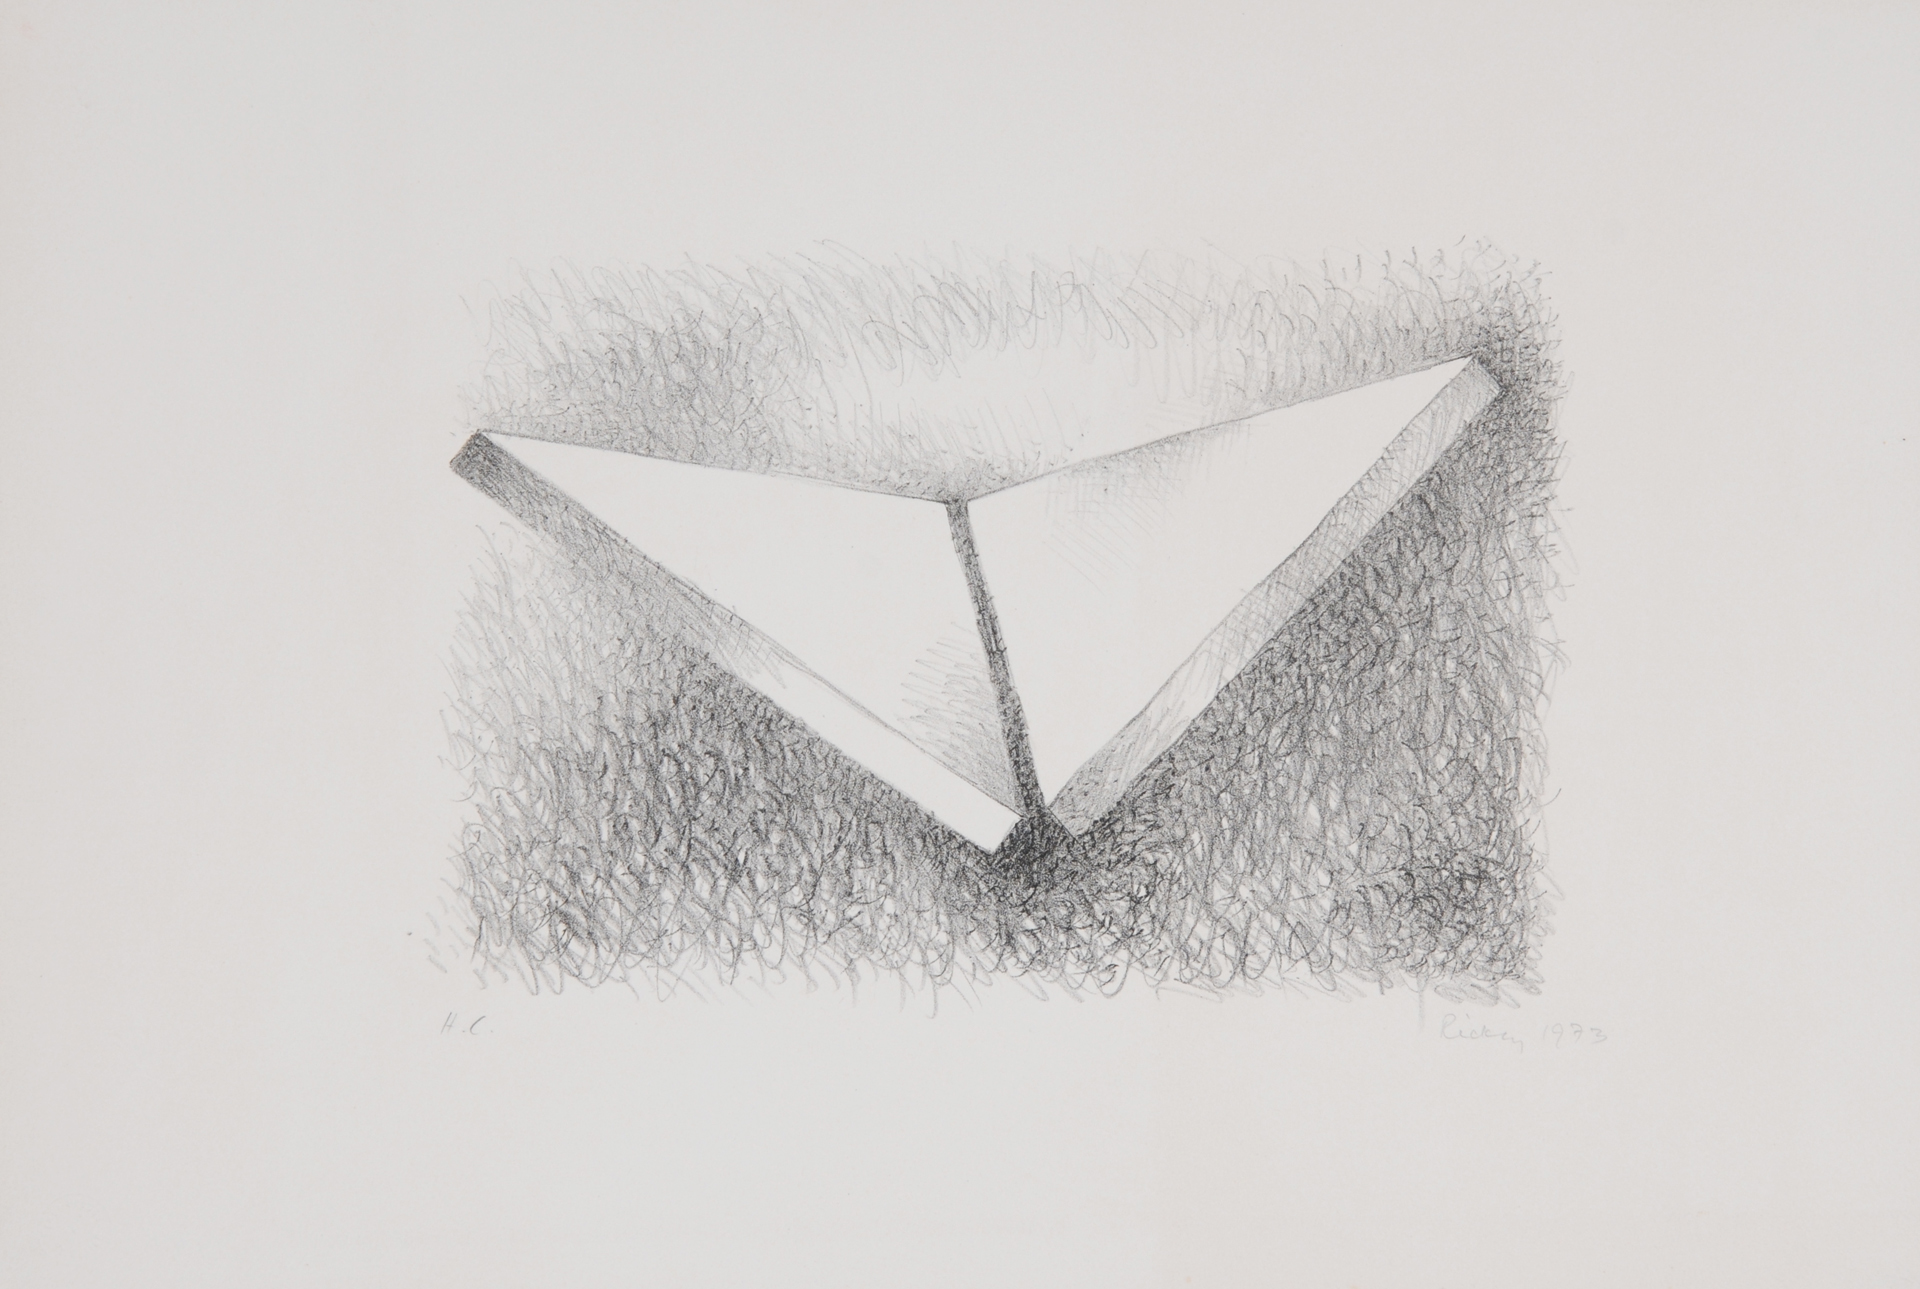 Rickey George, Two Triangles Dihedral